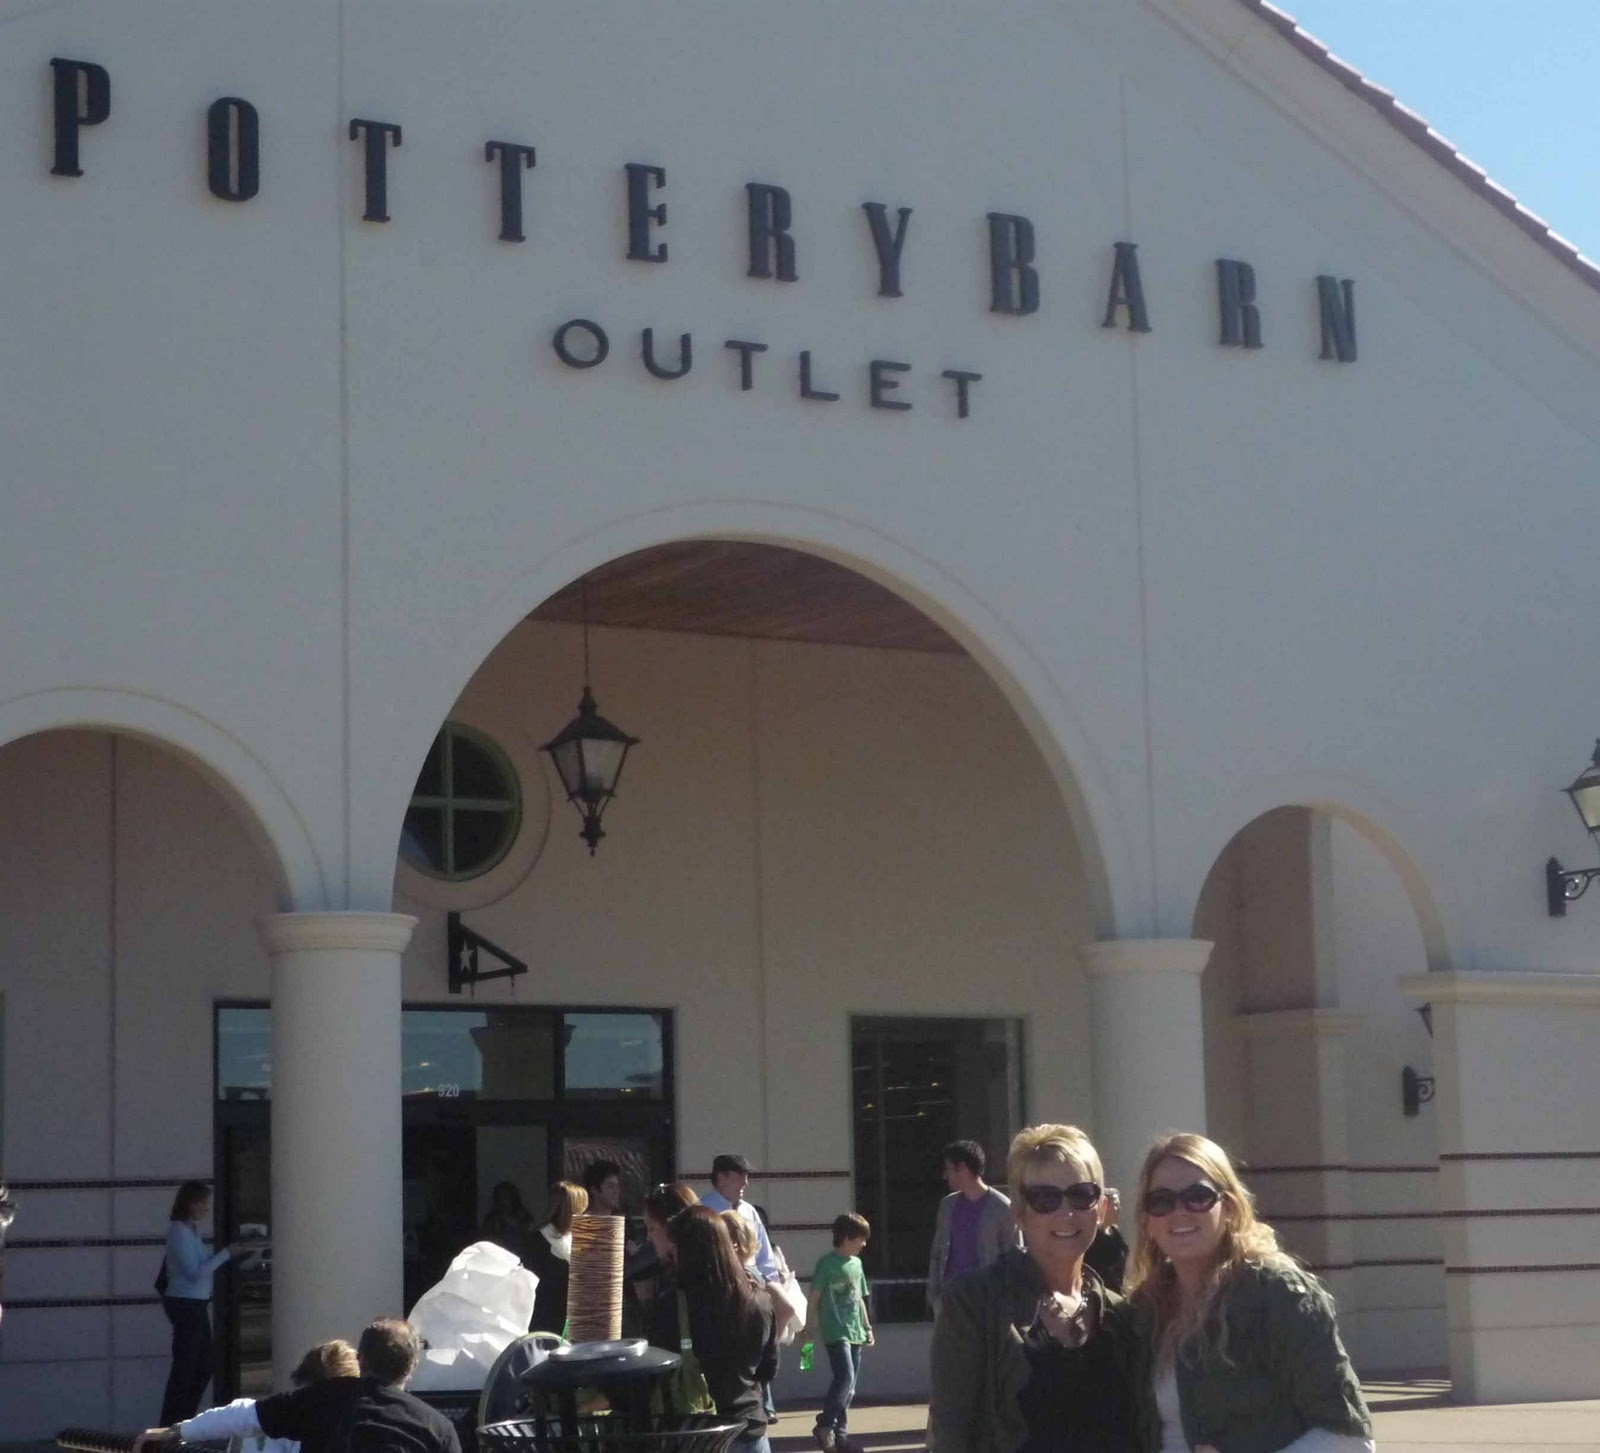 Pottery Barn Outlet Visit–and Finds!